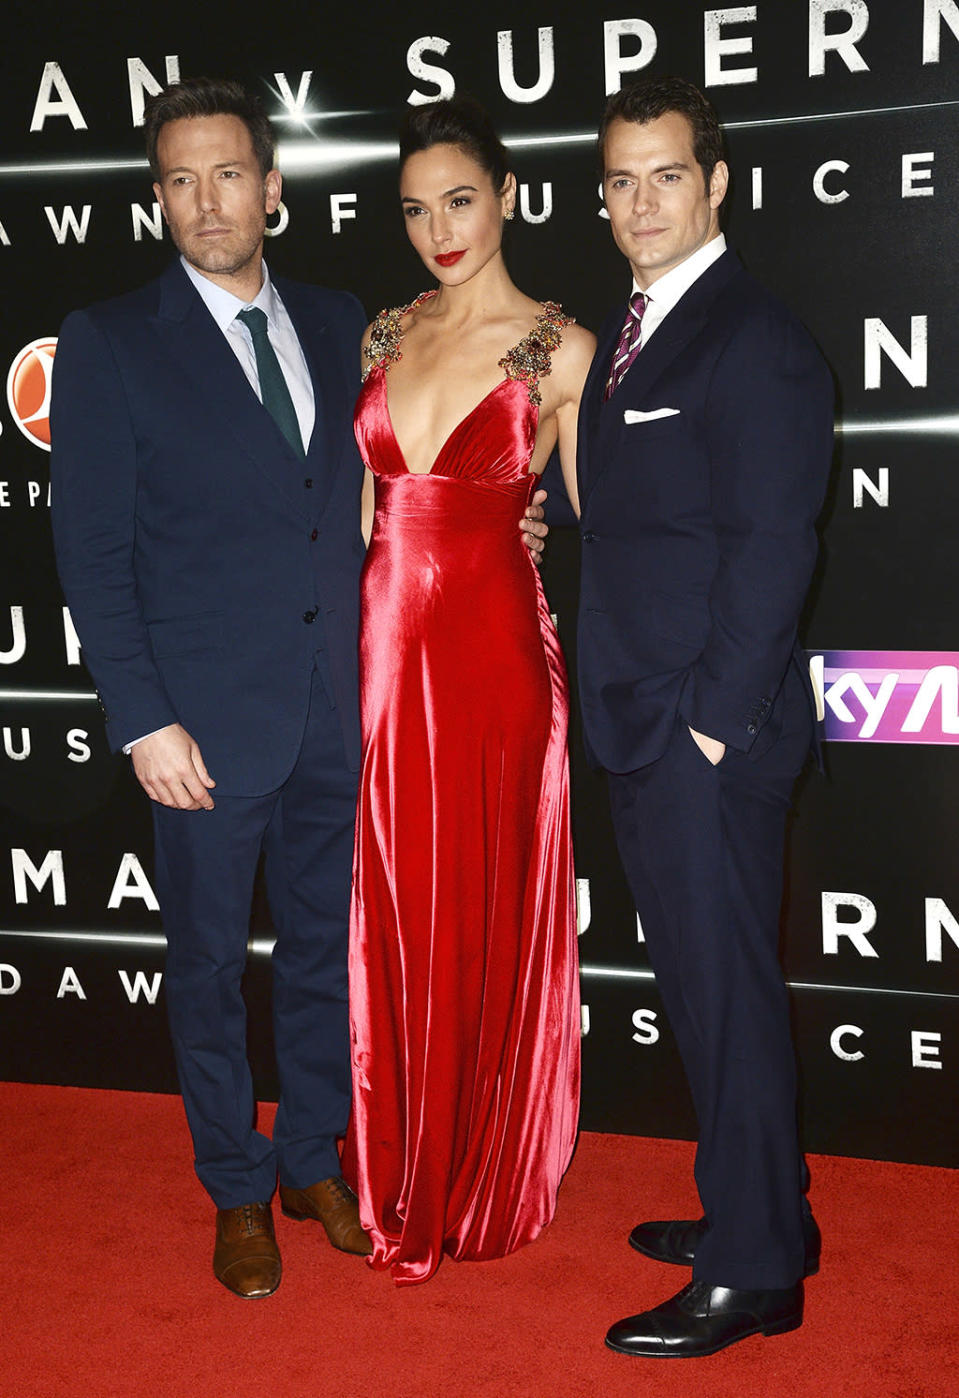 <p>Despite initial backlash for her casting, Gadot's Wonder Woman was praised by critics and fans as one of the best parts of Batman v Superman . Gadot and co-stars Affleck and Cavill stopped for a photo at the London premiere on March 22, 2016. (Photo: Dave J Hogan/Getty Images) </p>